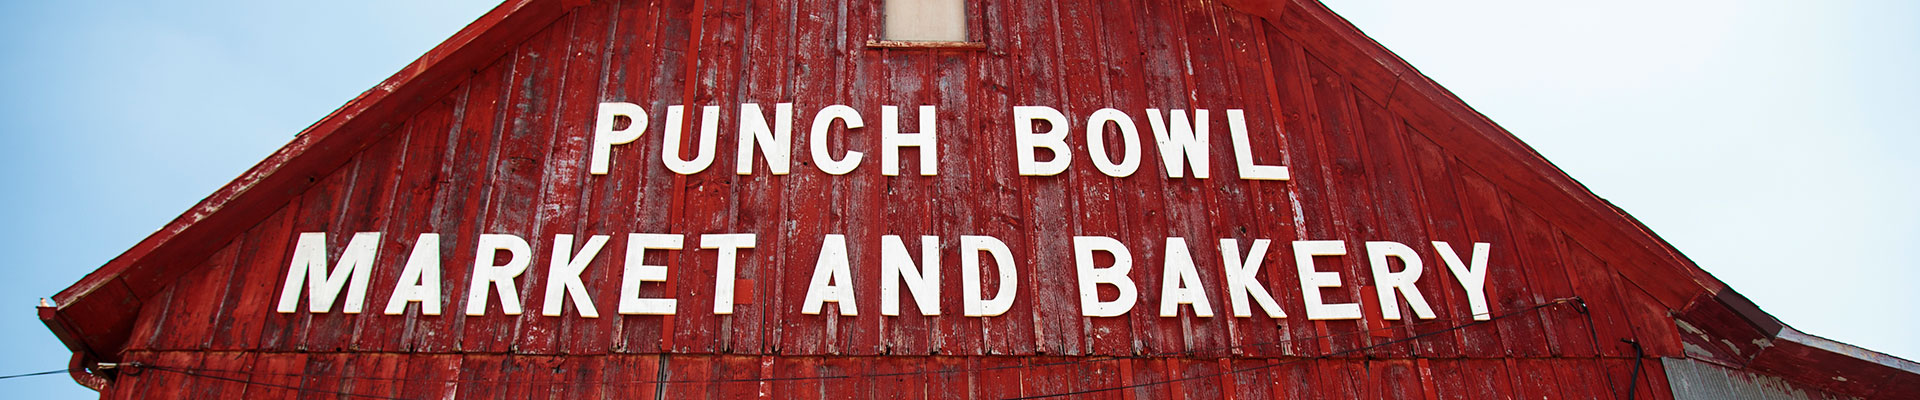 Photo-Red-Barn-Bakery-2012-06-24-Devils-Punchbowl--002.jpg